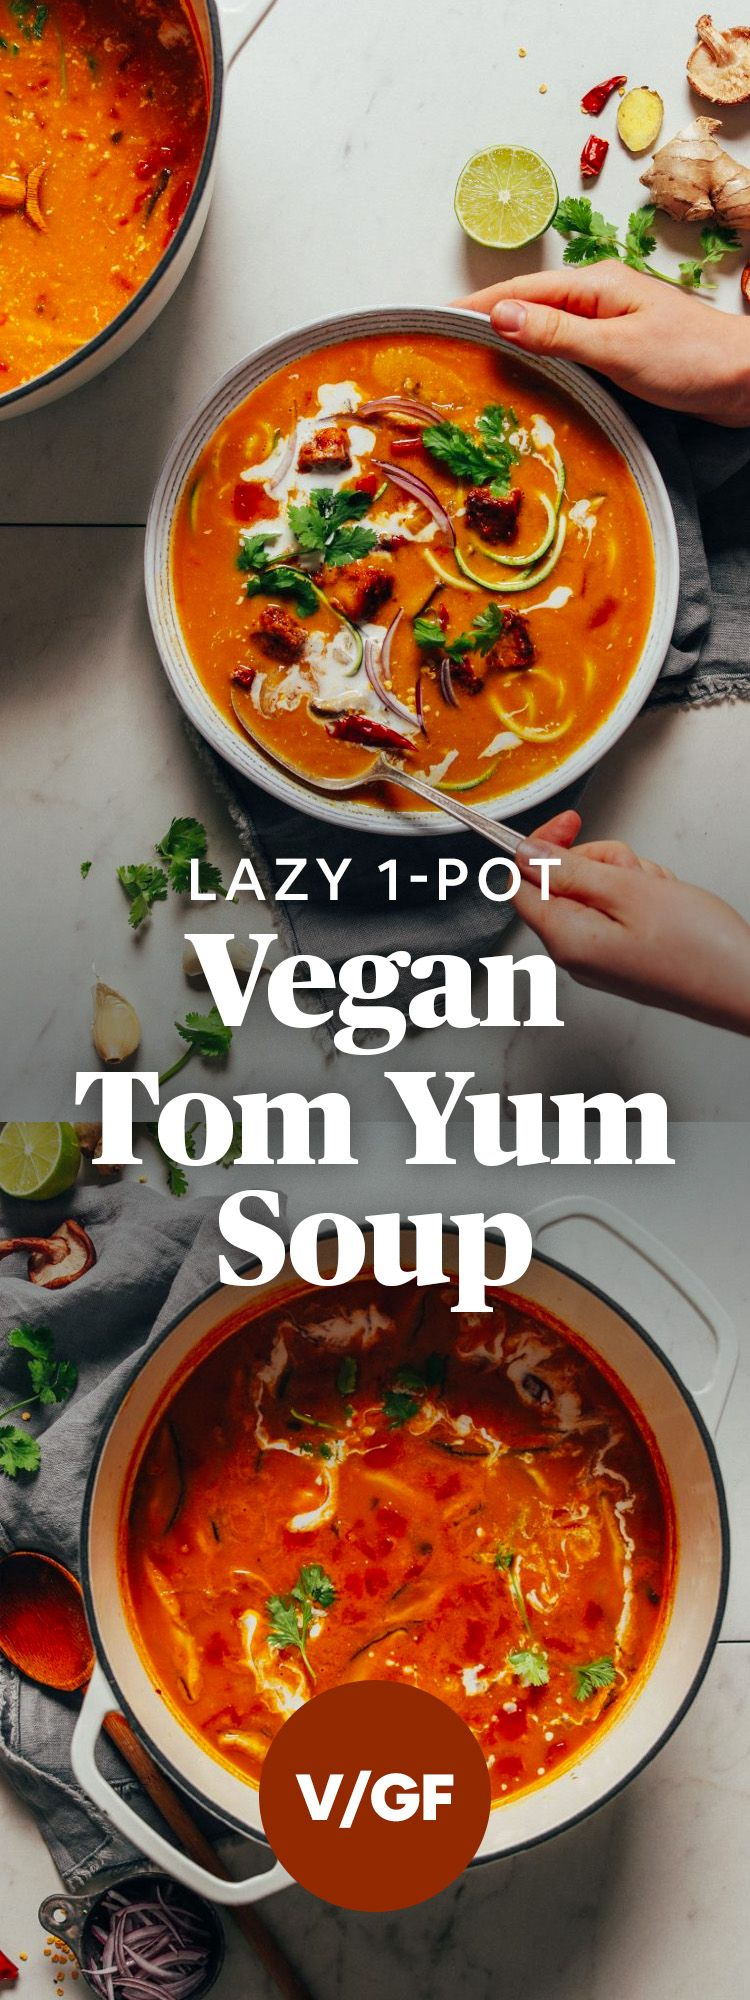 Easy 1-Pot Vegan Tom Yum Soup | Minimalist Baker Recipes